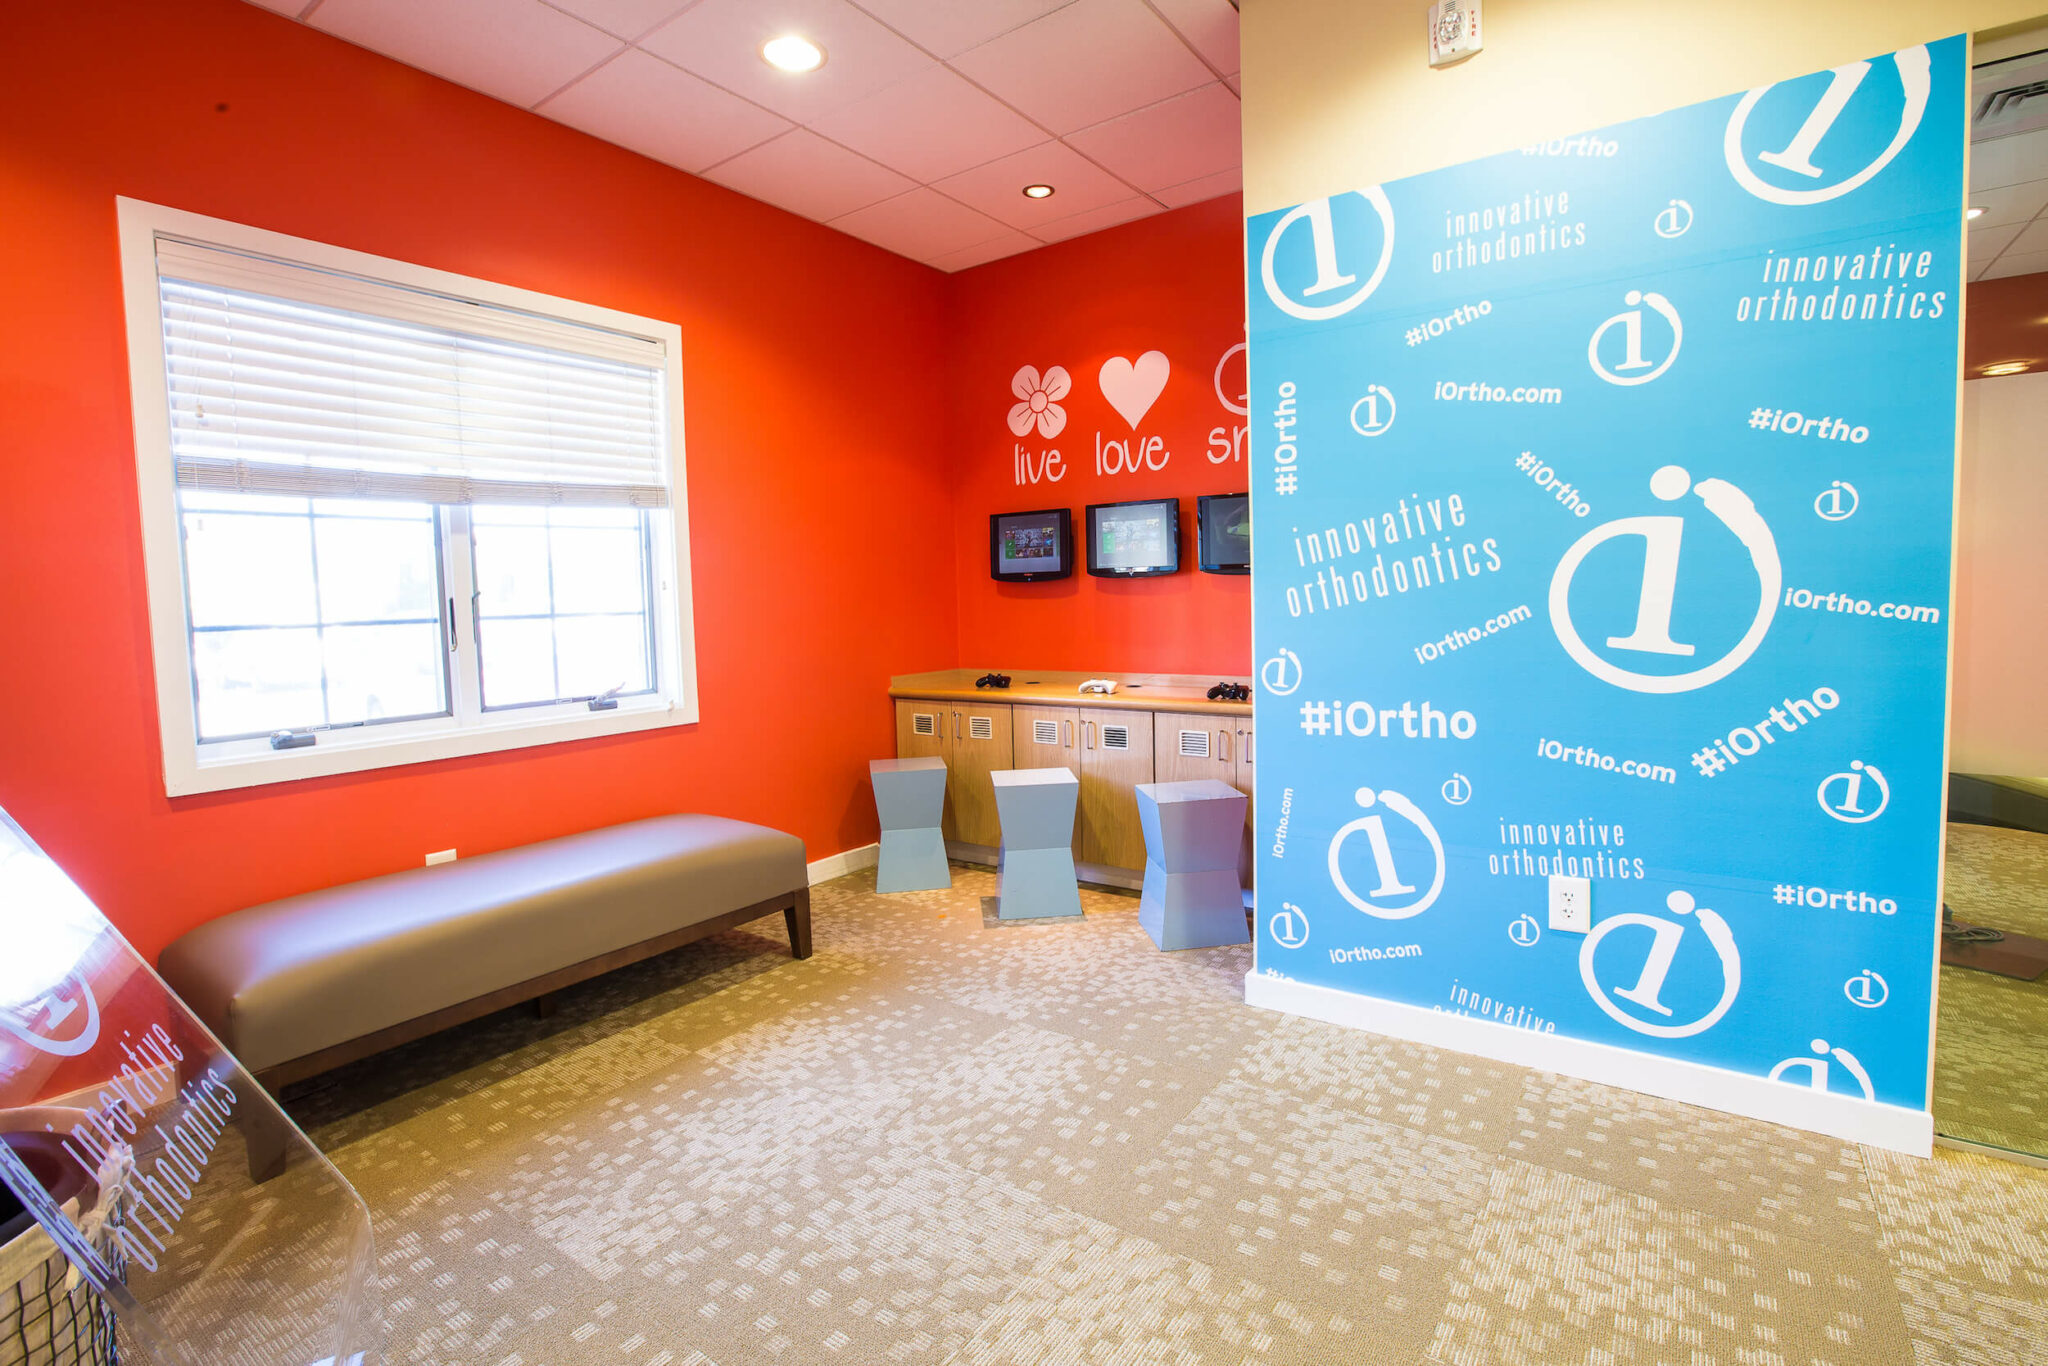 """Innovative-Orthodontics-South-New-Jersey-iortho.com-56 The Real Reason People Say """"I Hate the Orthodontist"""""""